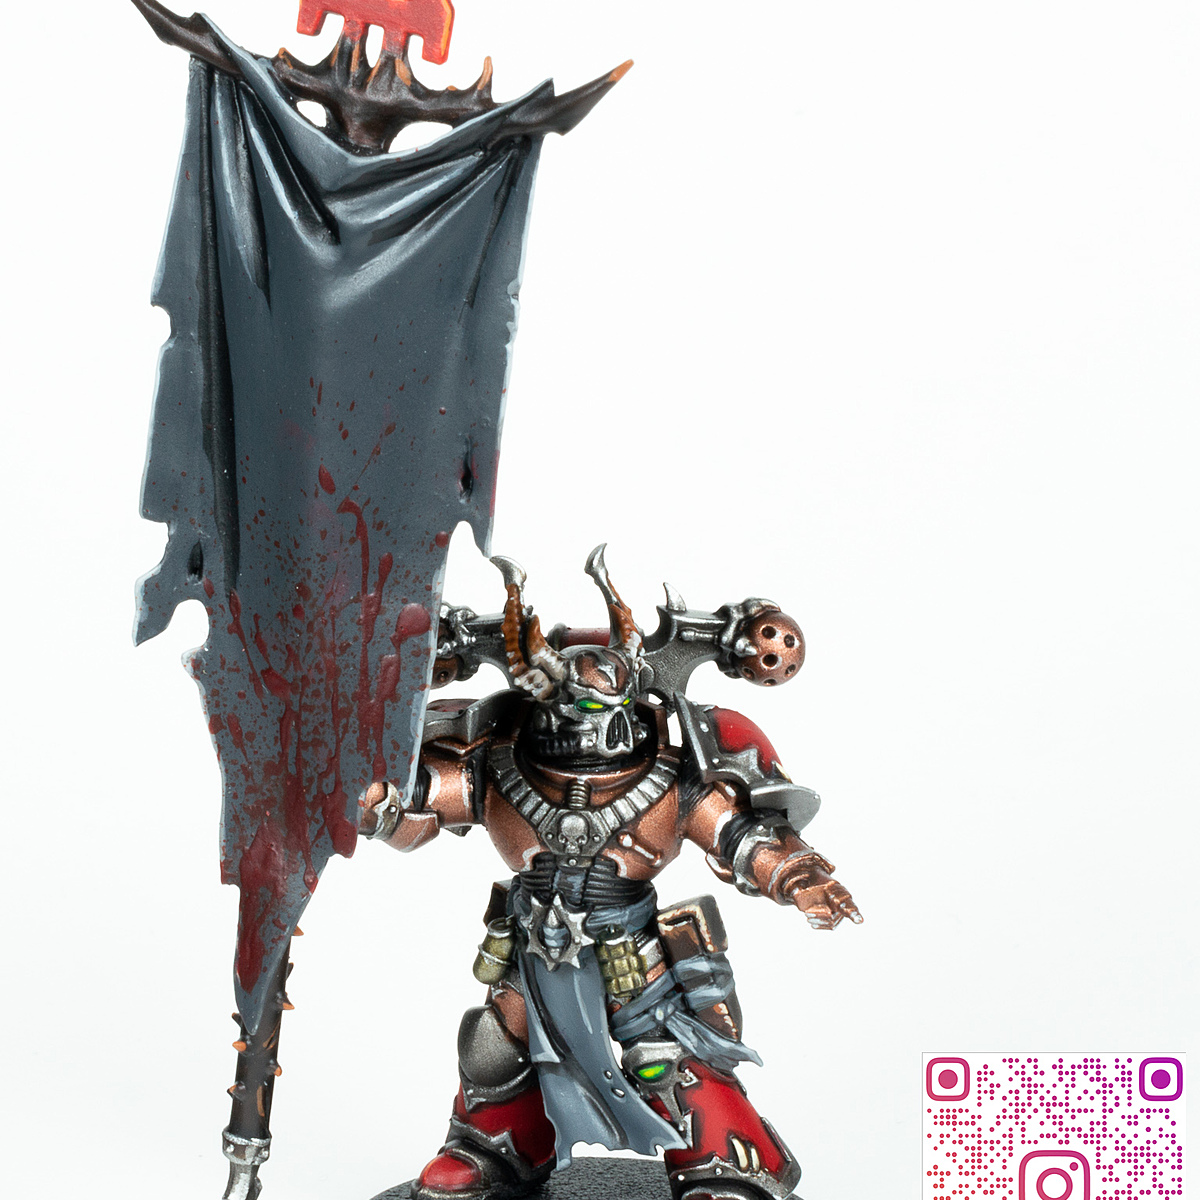 The Bloodgorged